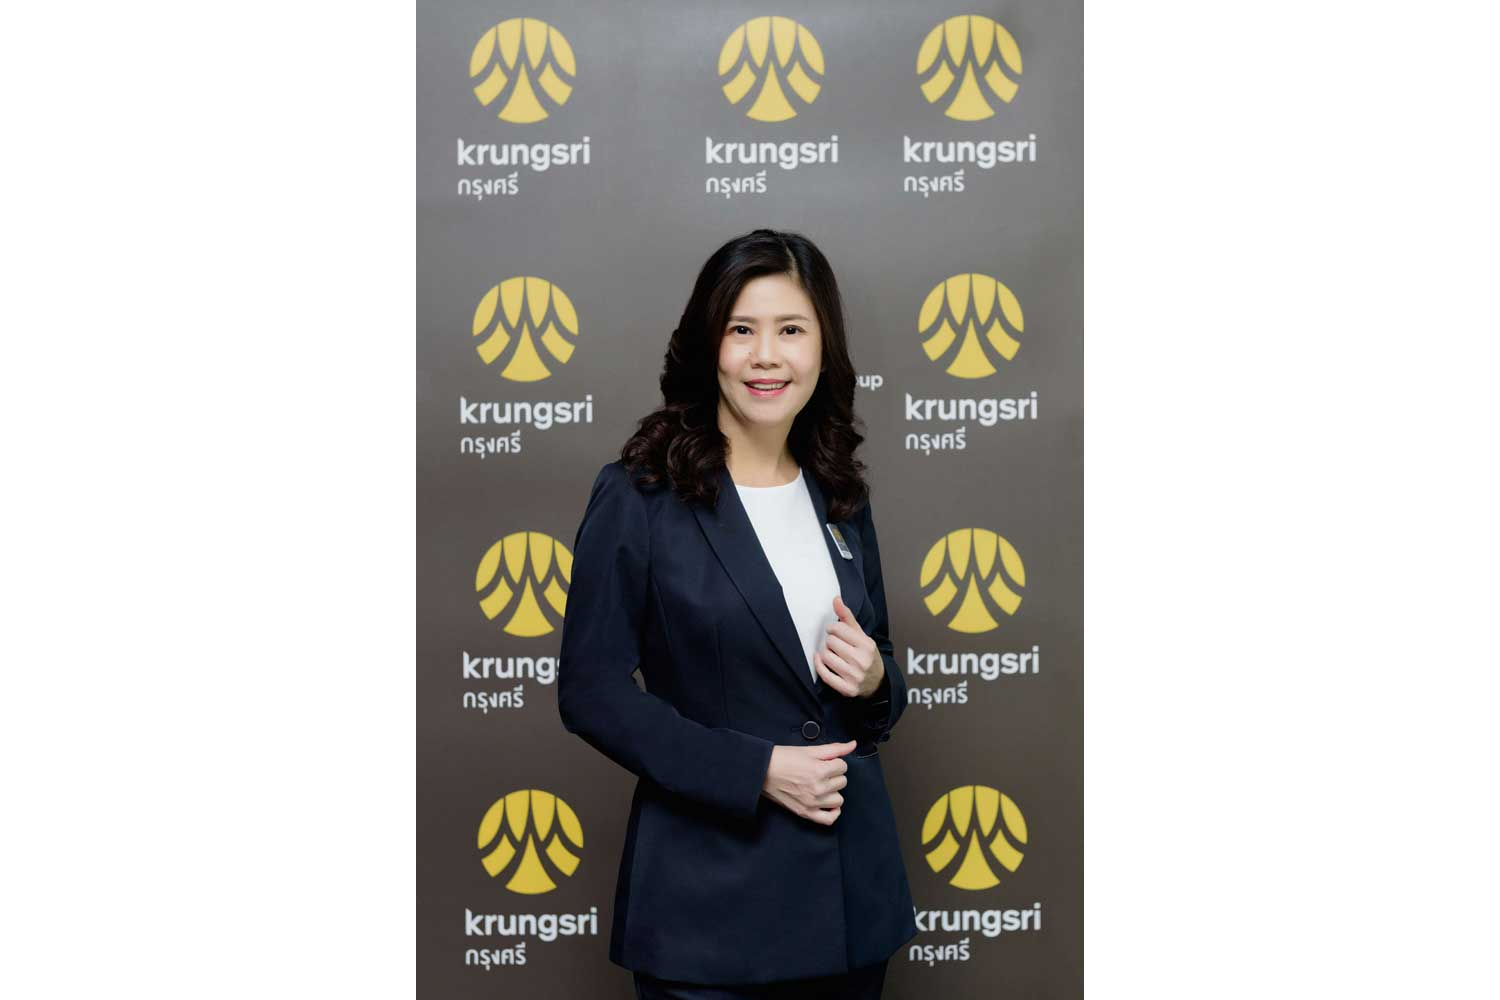 Krungsri continues to move forward to become the main bank for SME